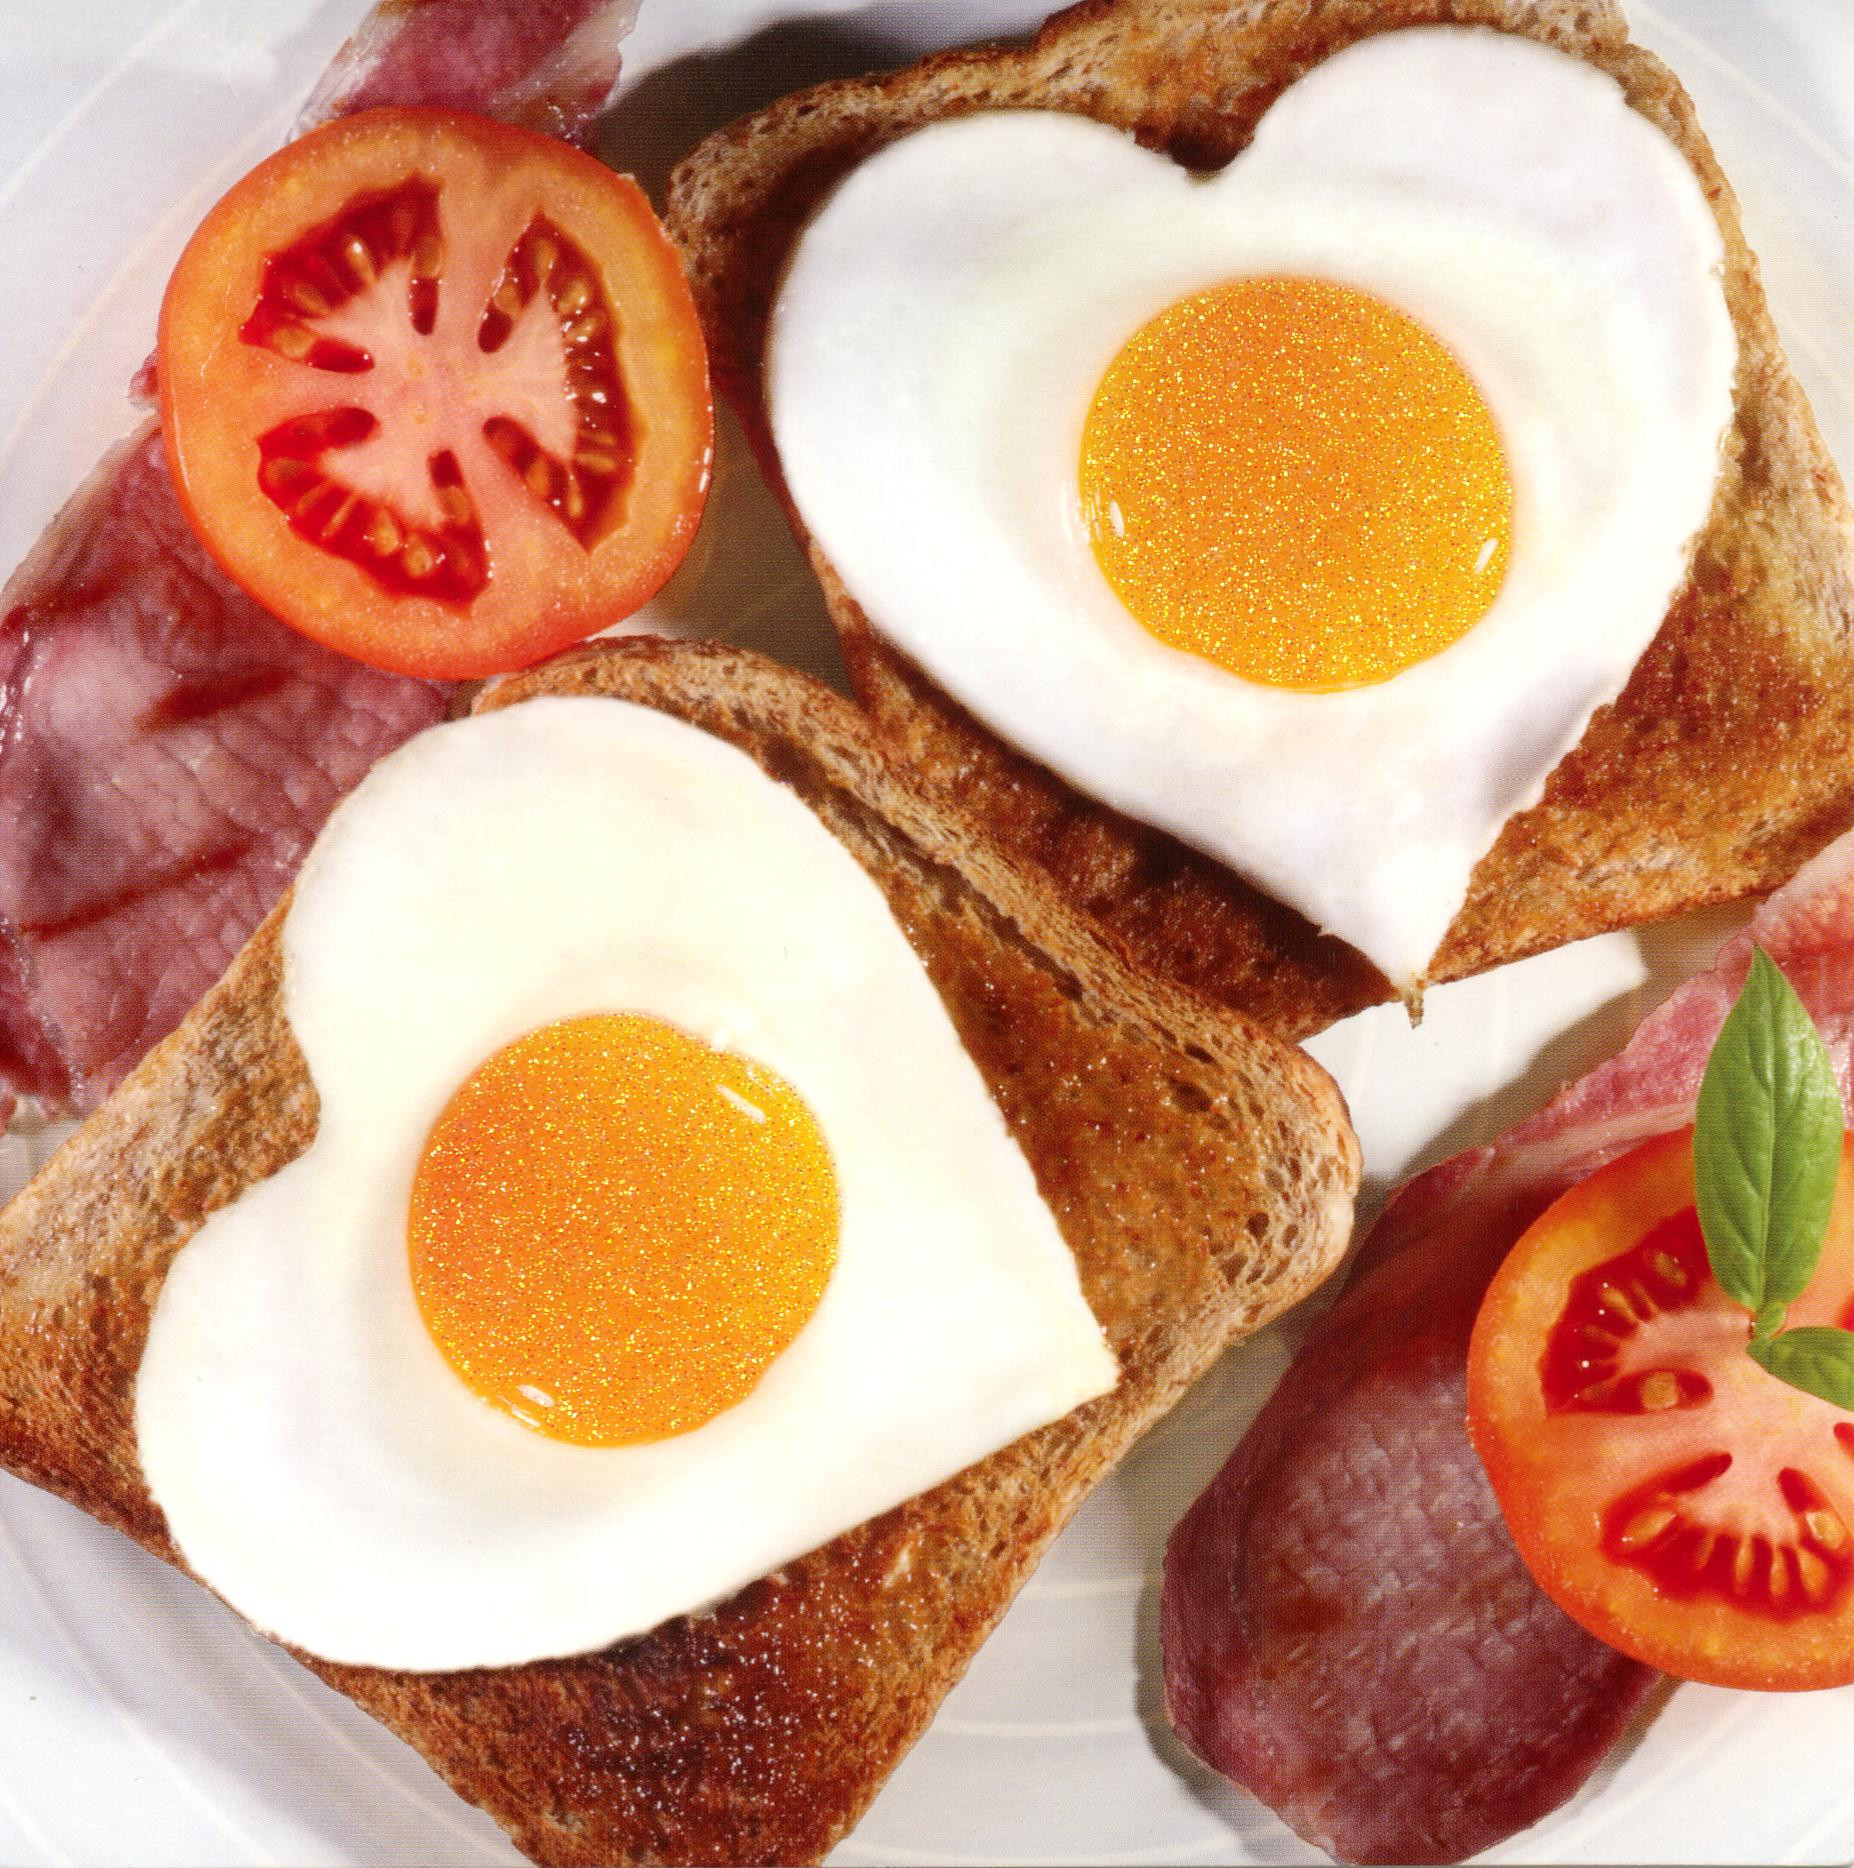 Heart Healthy Breakfast Foods  Heart Healthy Breakfast Ideas By tastymeals